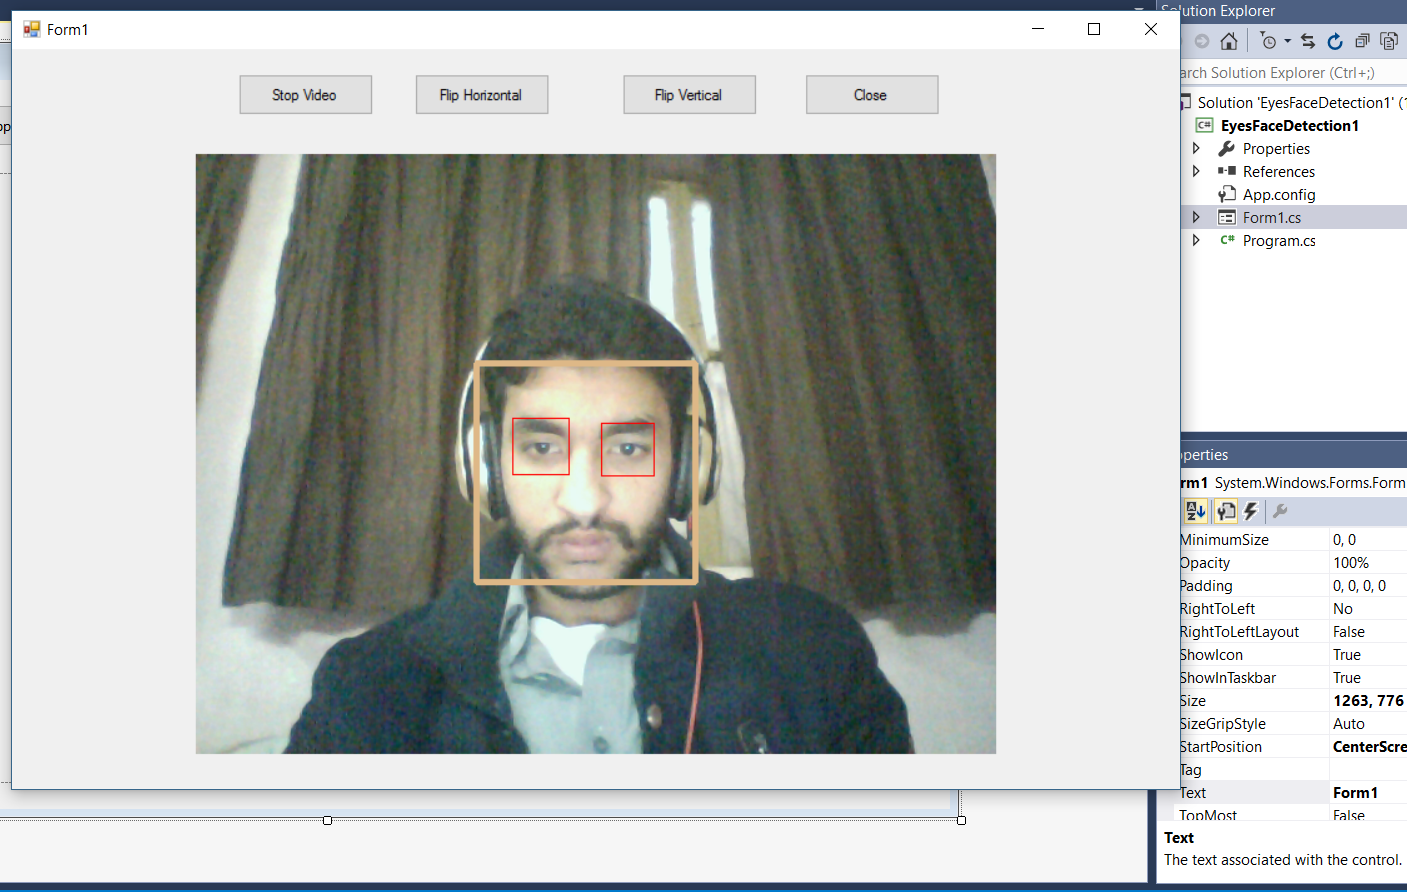 face detection and recognition in c  using emgucv 3 0  opencv wrapper   u2013 part 1  u00ab ahmed u0026 39 s blog